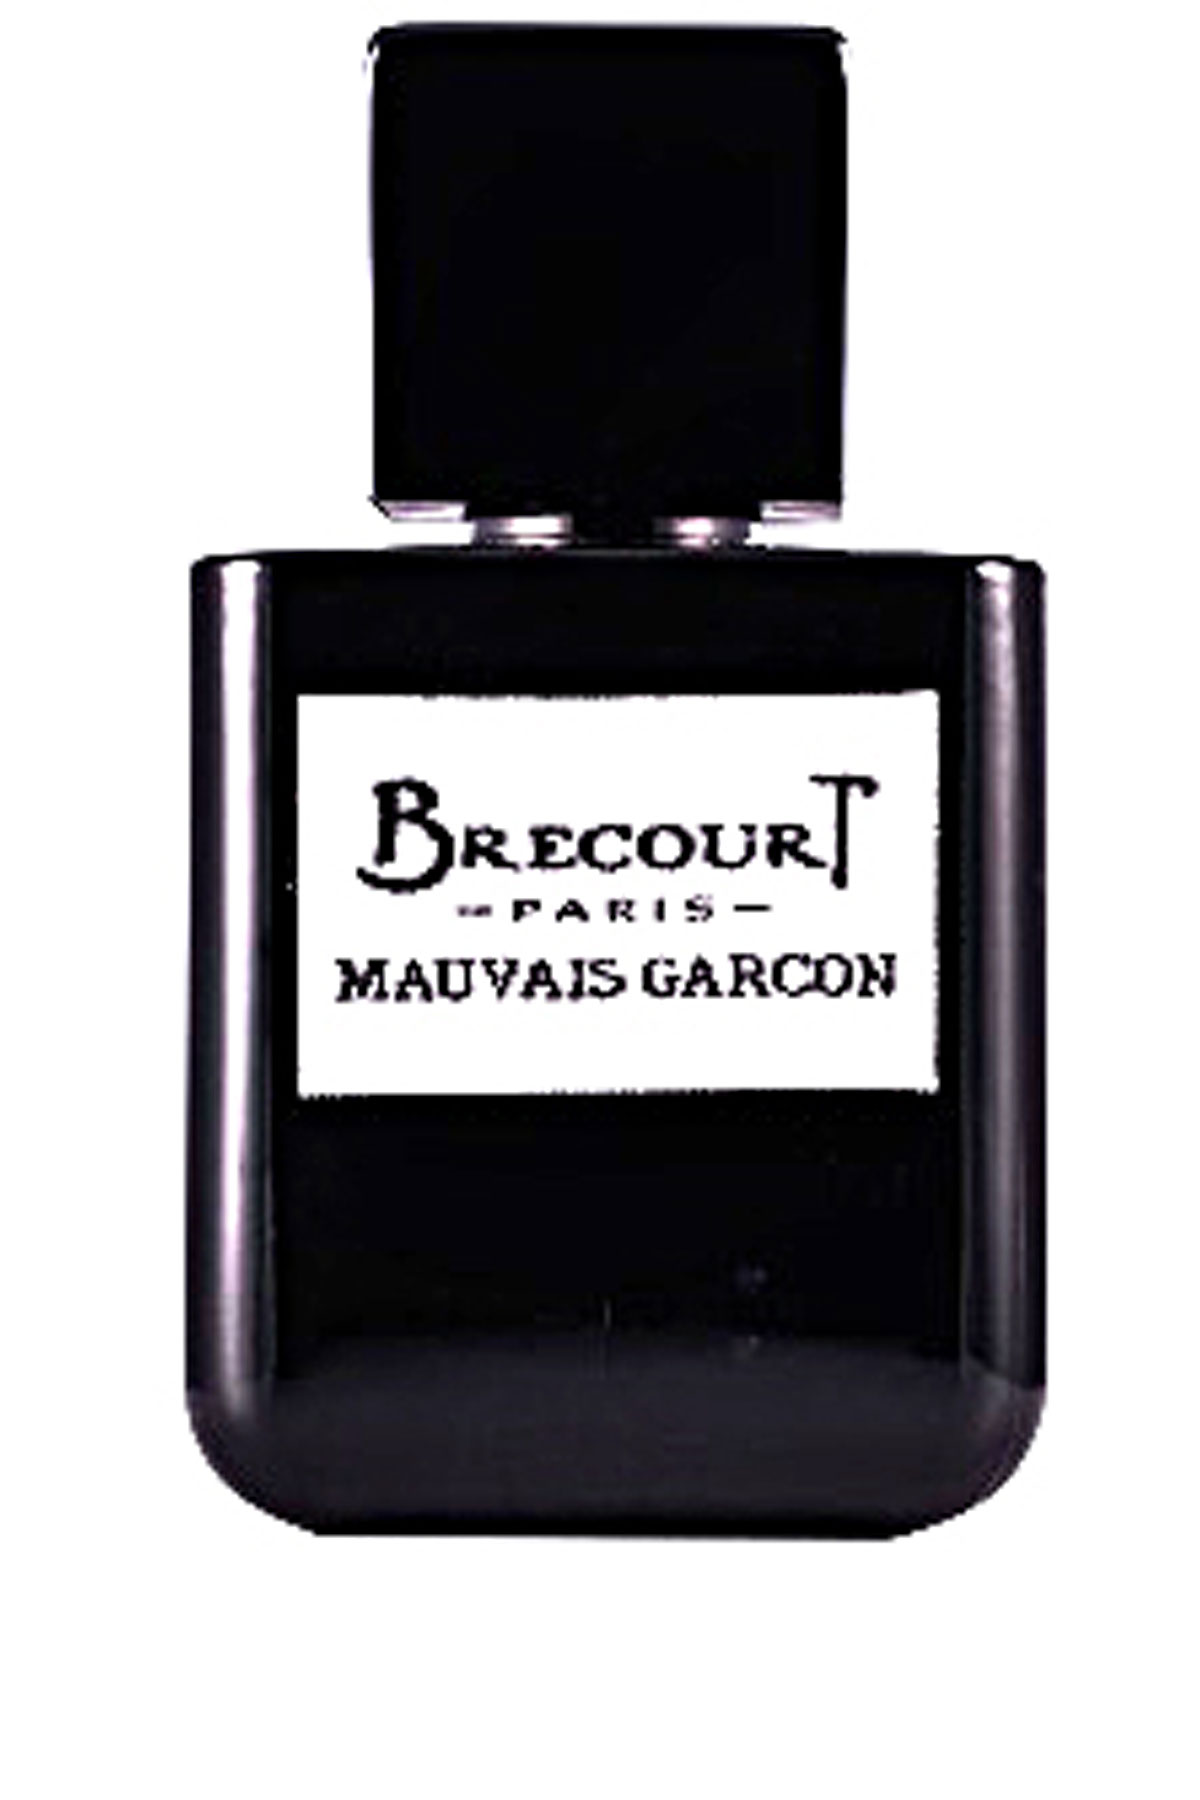 Brecourt Fragrances for Men, Mauvais Garcon Eau De Parfum 50 Ml, 2019, 50 ml